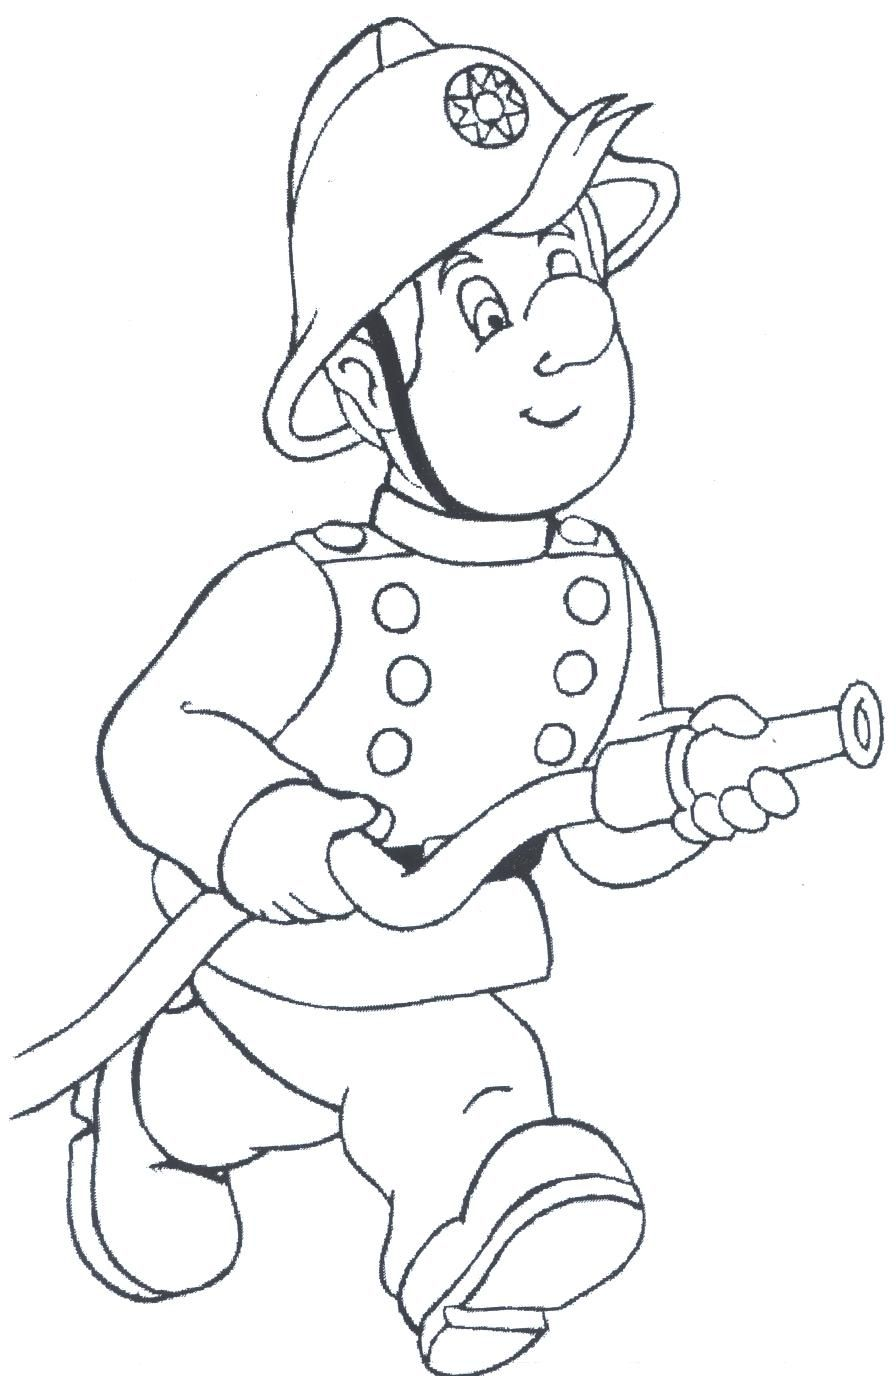 Feuerwehrmann Sam Ausmalbilder Geburtstag : Firefighter Coloring Pages Free Large Images Fun To Do